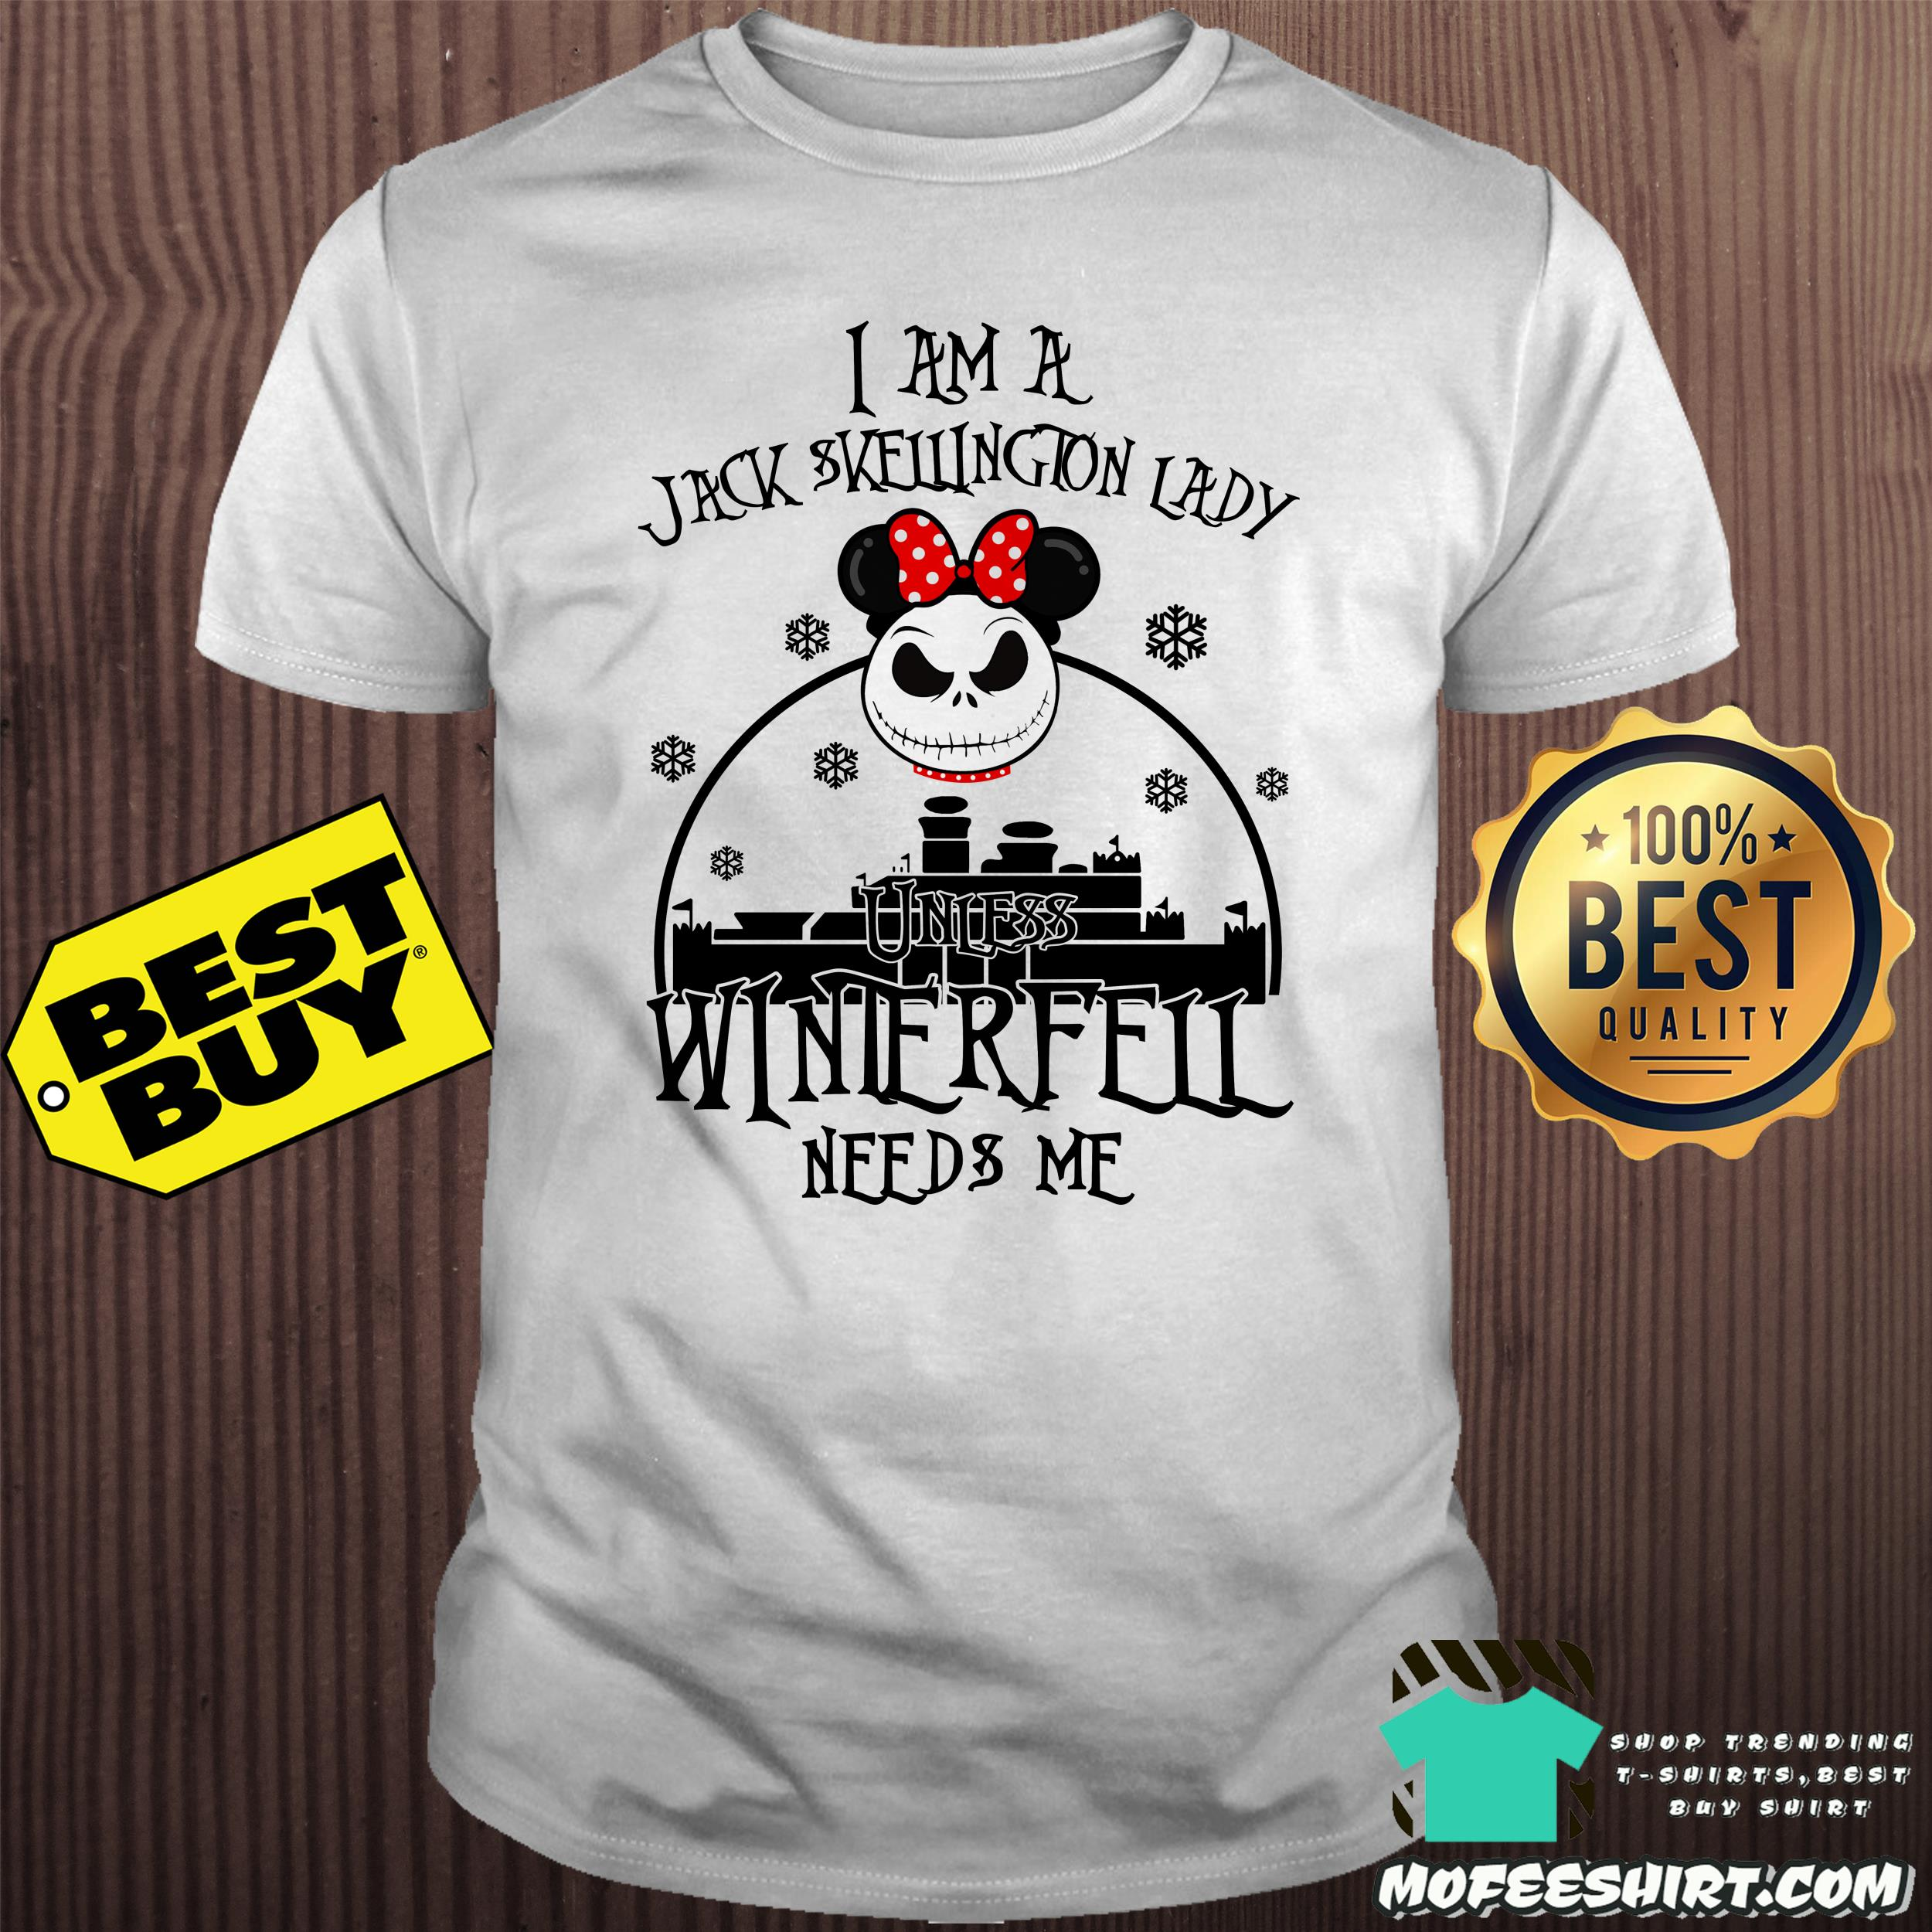 I am a Jack Skellington lady unless Winterfell need and me shirt